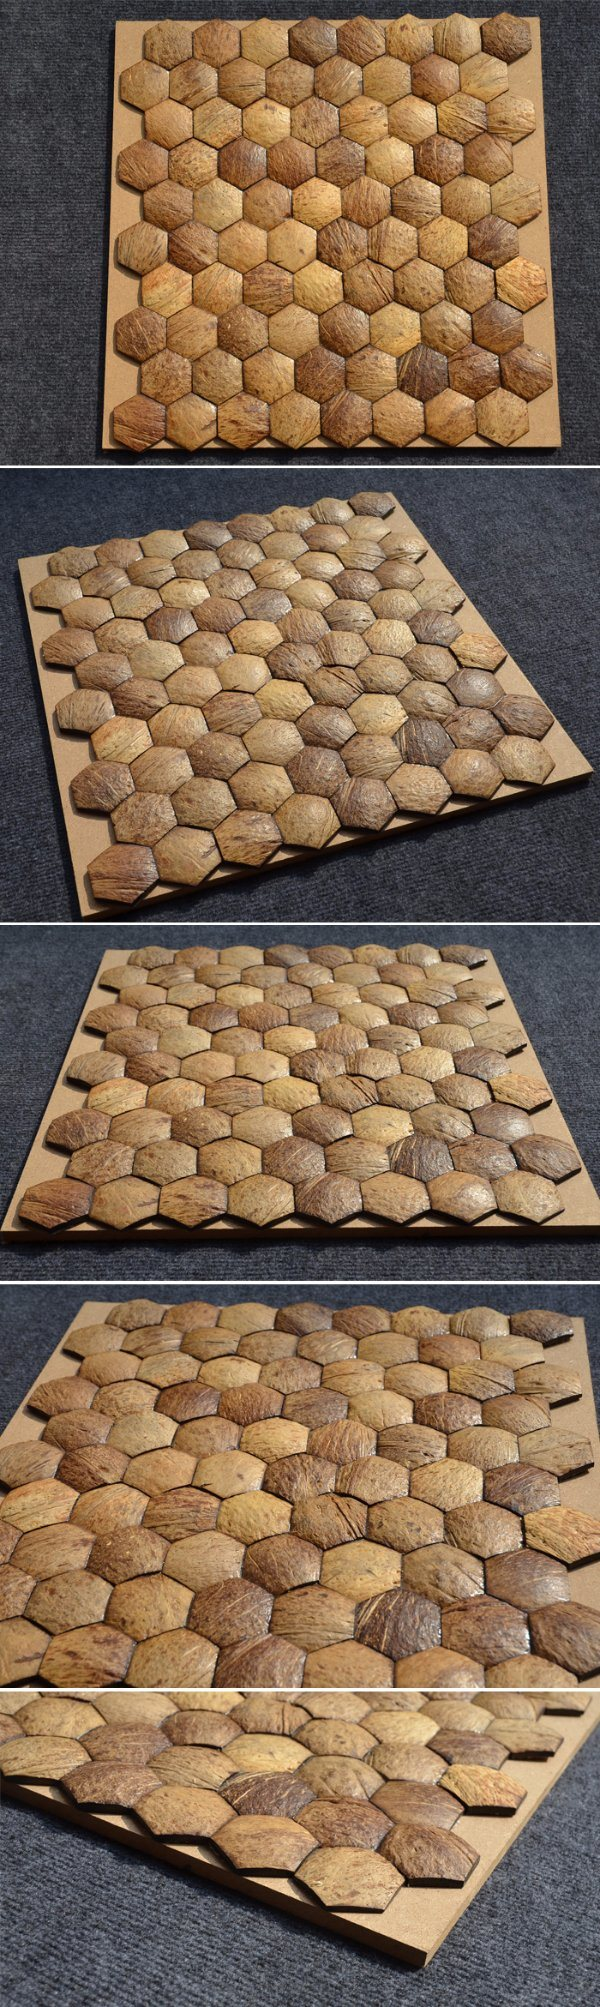 for Wall Decoration Natural Coconut Shell Mosaics Designs Coco Mosaic